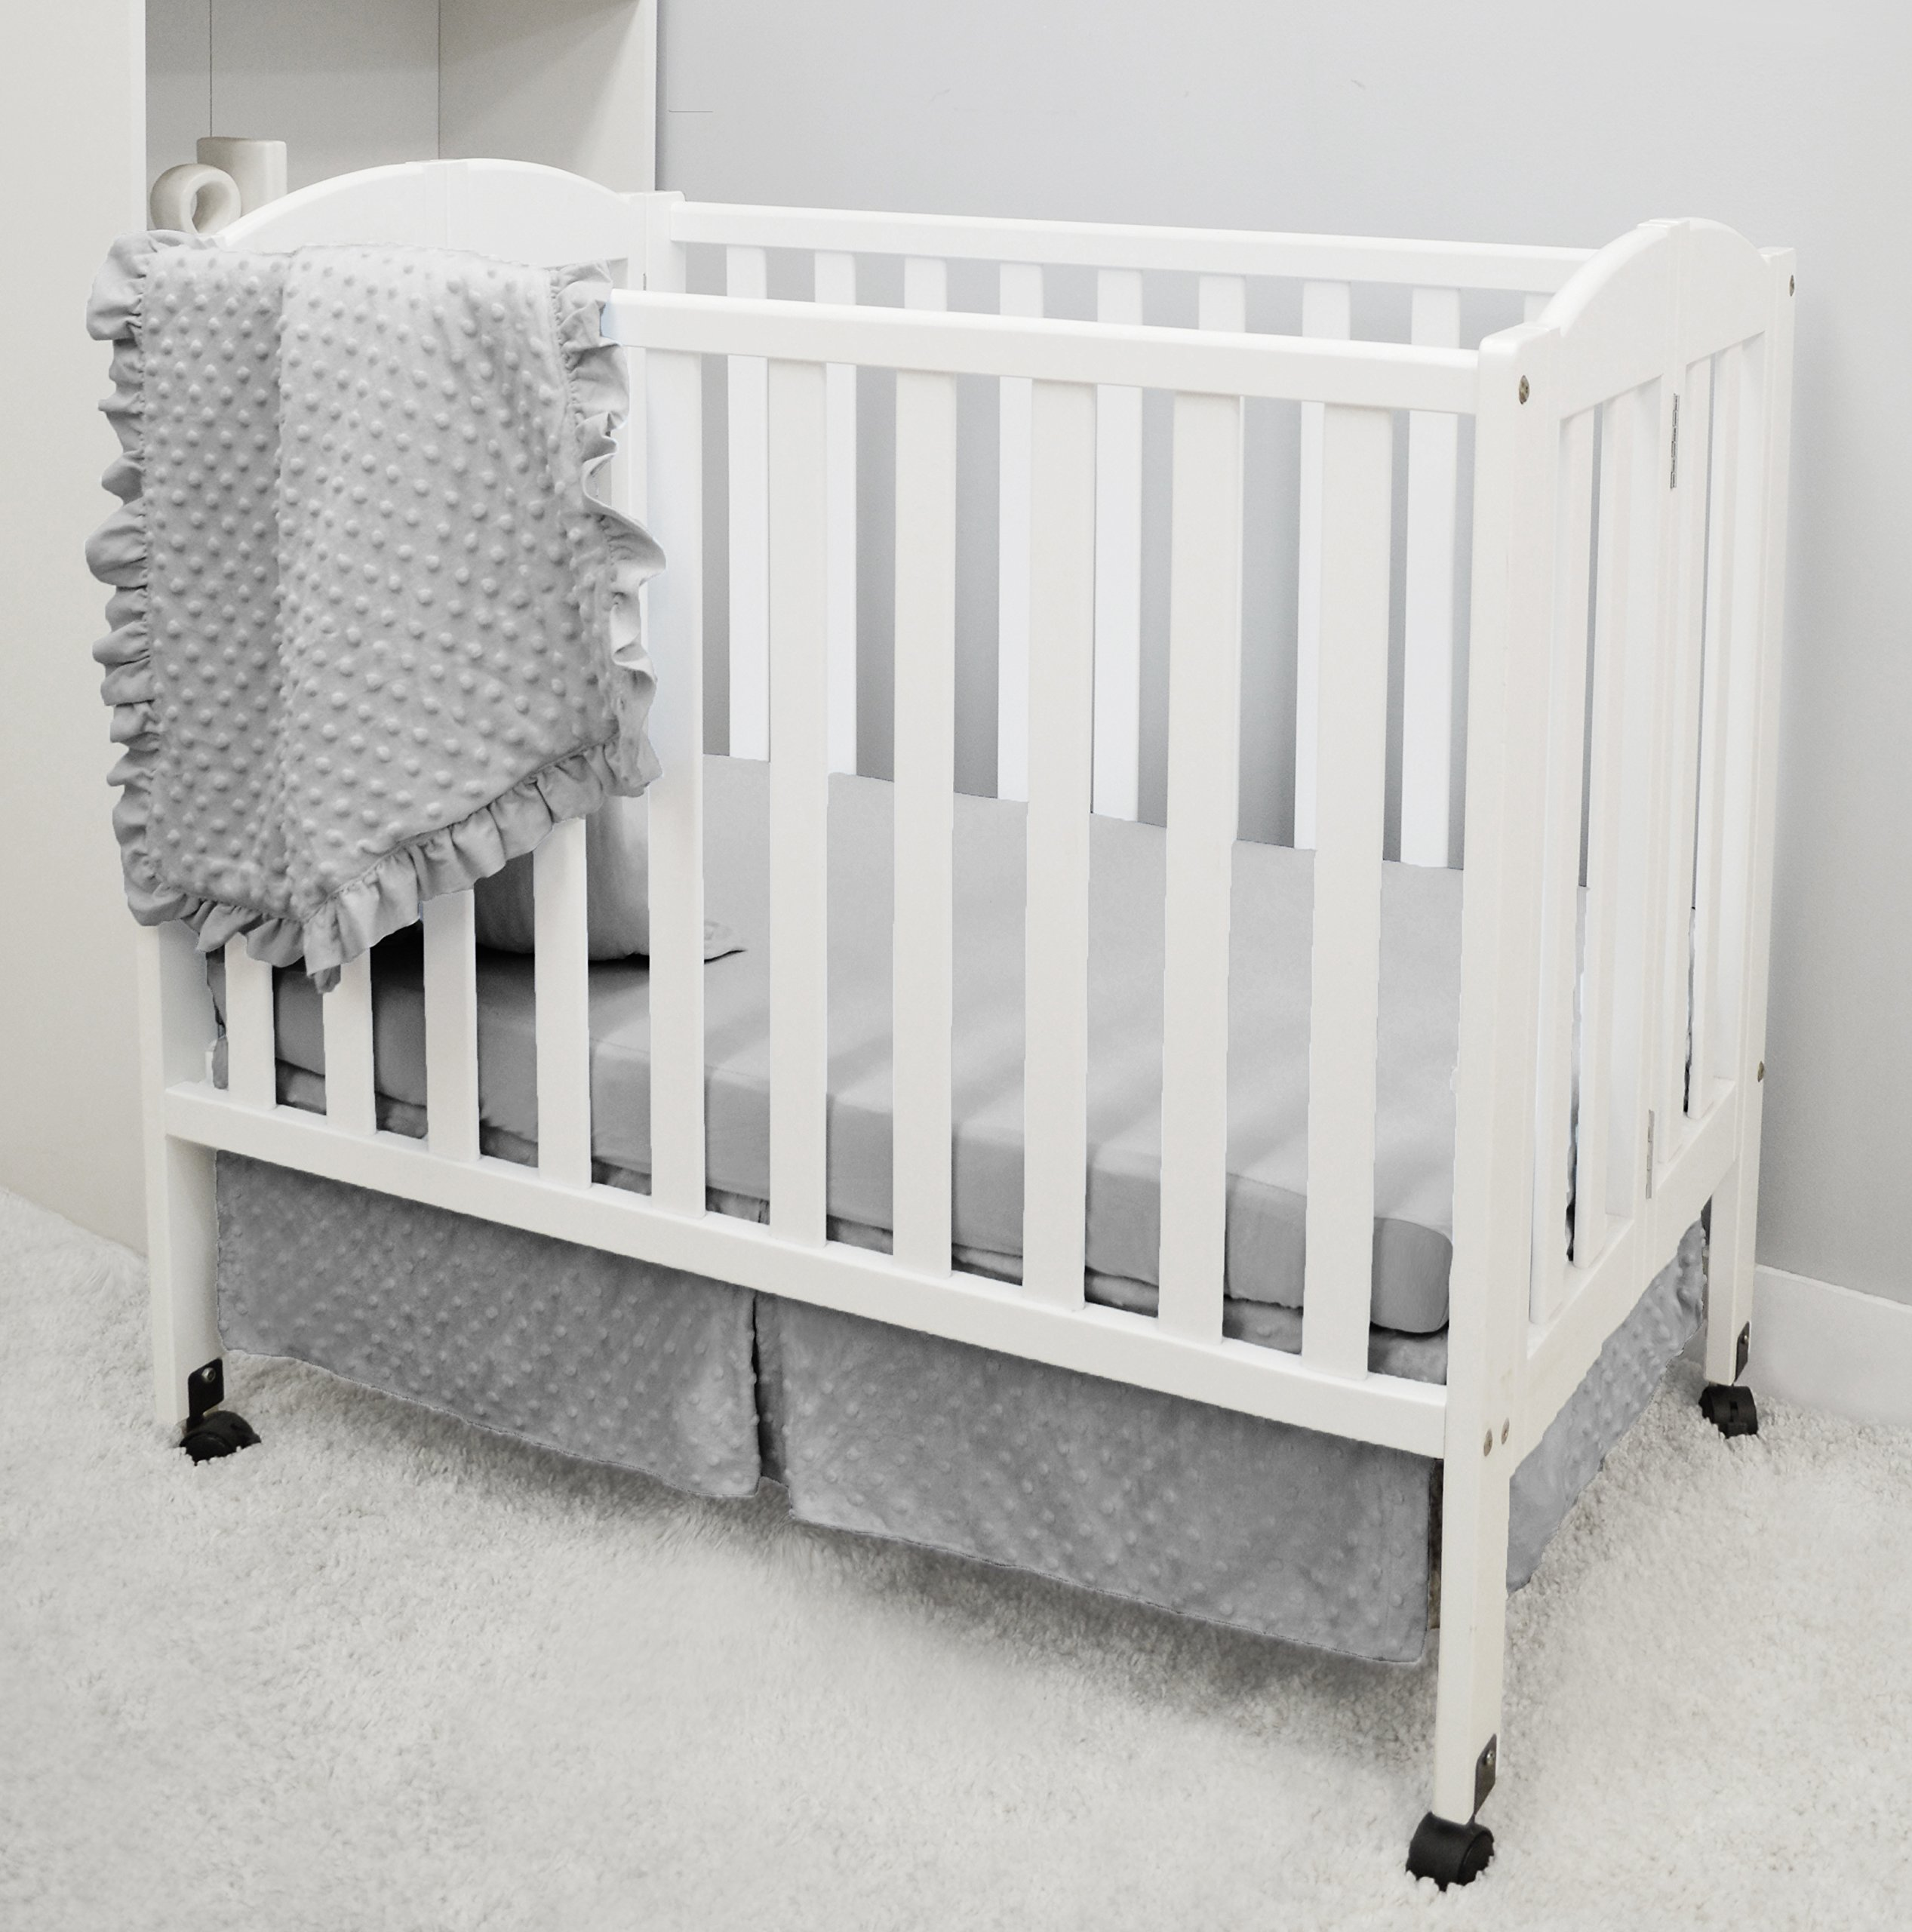 American Baby Company Heavenly Soft Minky Dot 3-Piece Mini/Portable Crib Bedding Set, Grey, for Boys and Girls by American Baby Company